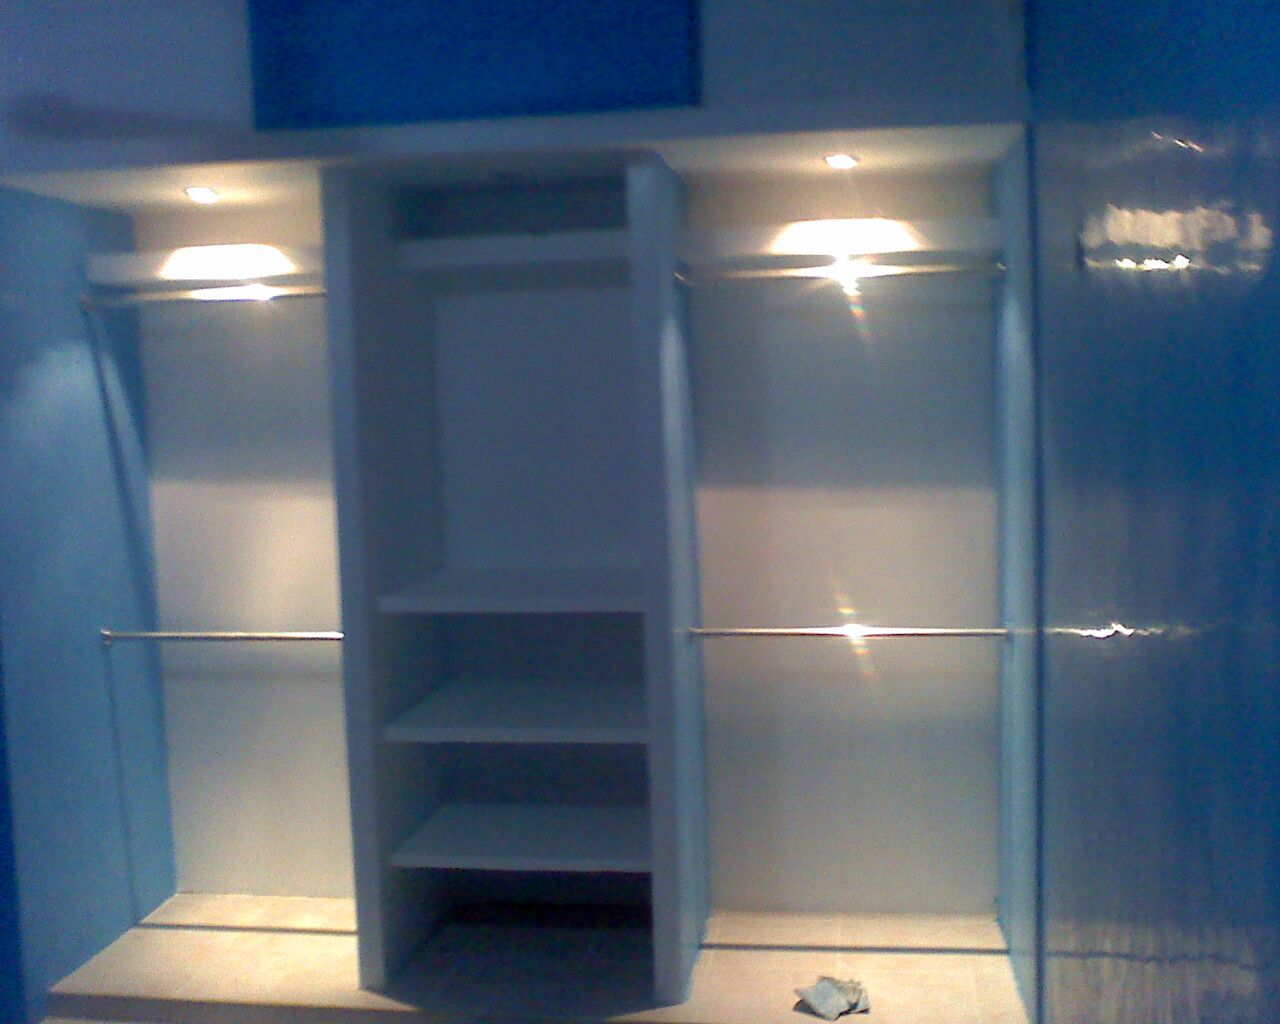 Closet tablaroca home drywall pinterest closet for Techos de yeso modernos